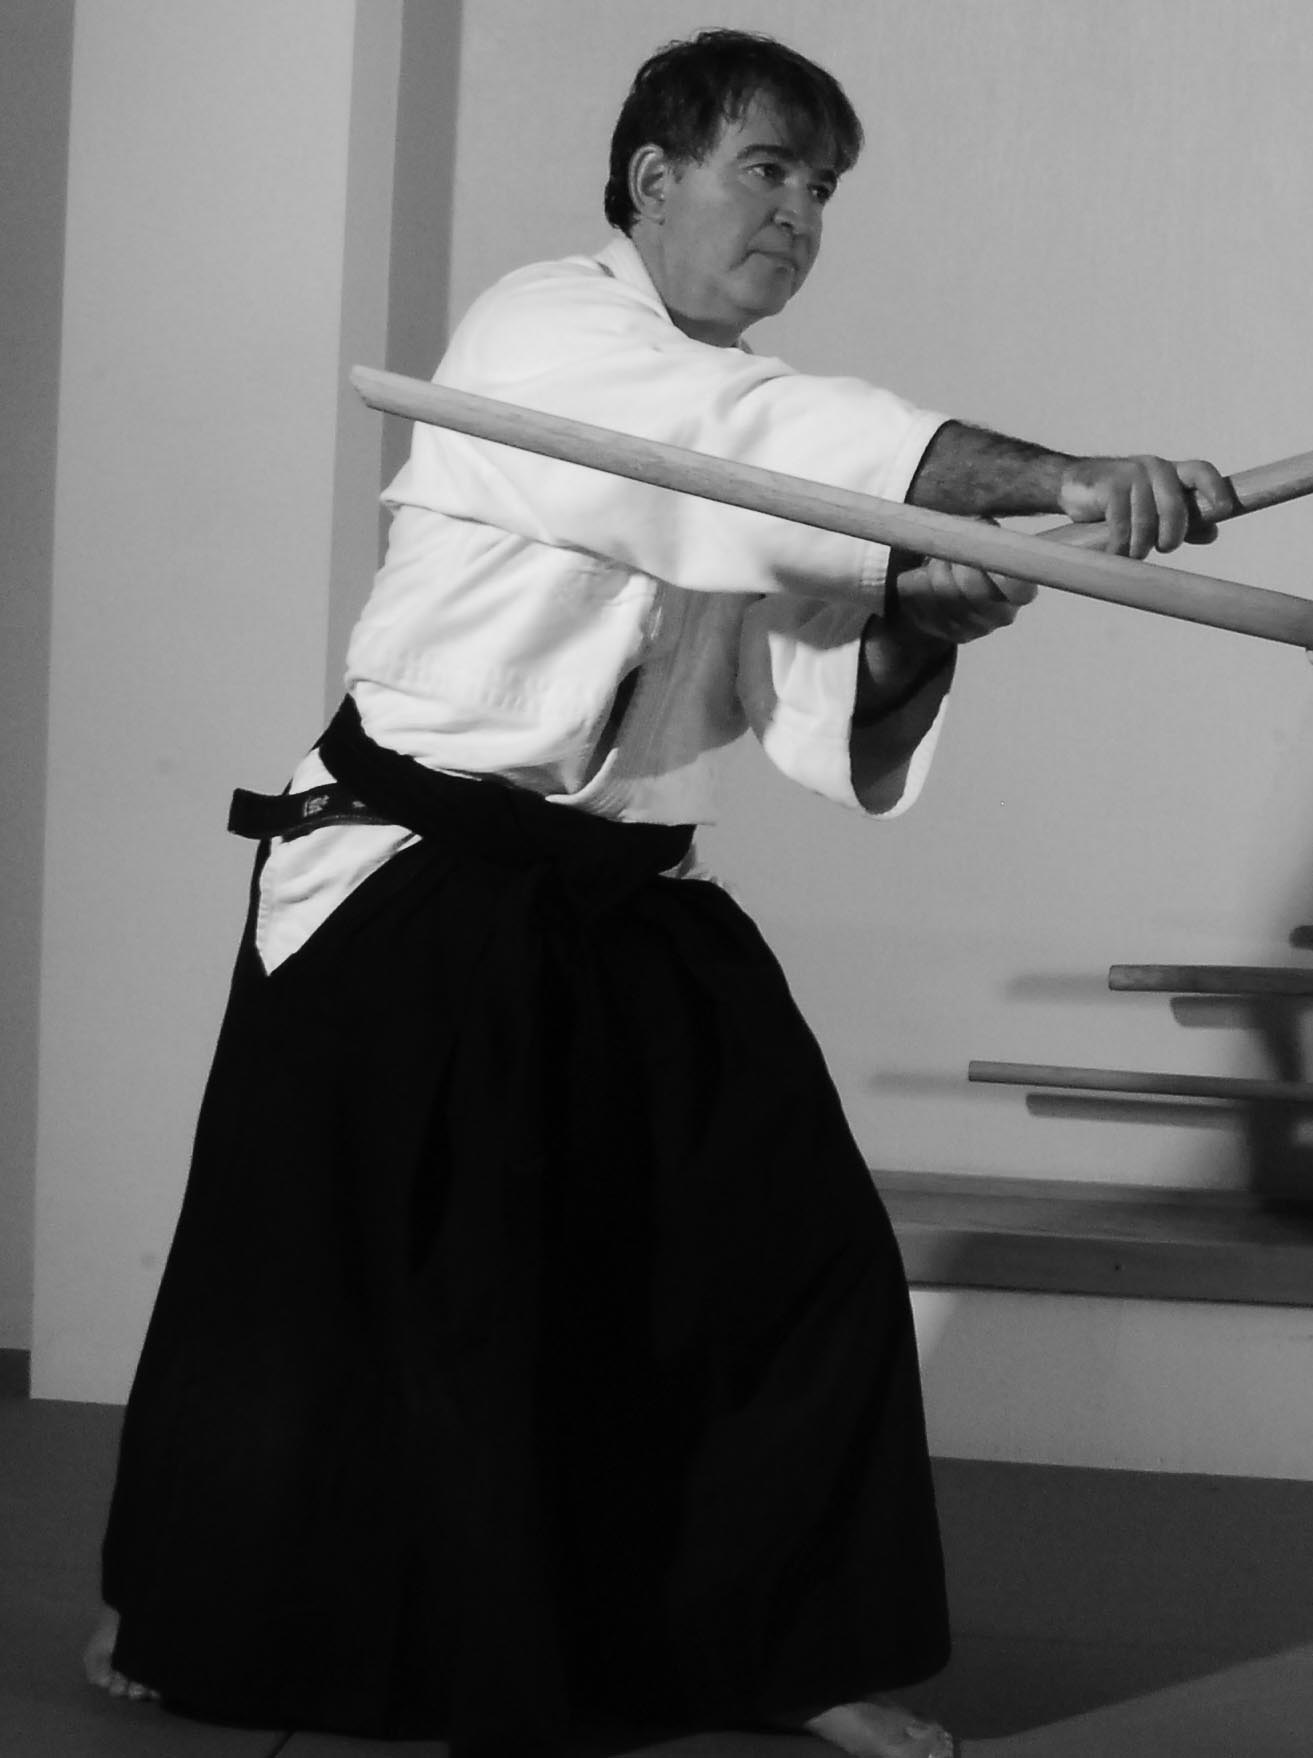 Dino Manco, Aikido weapons instructor at Naka Ima Aikido